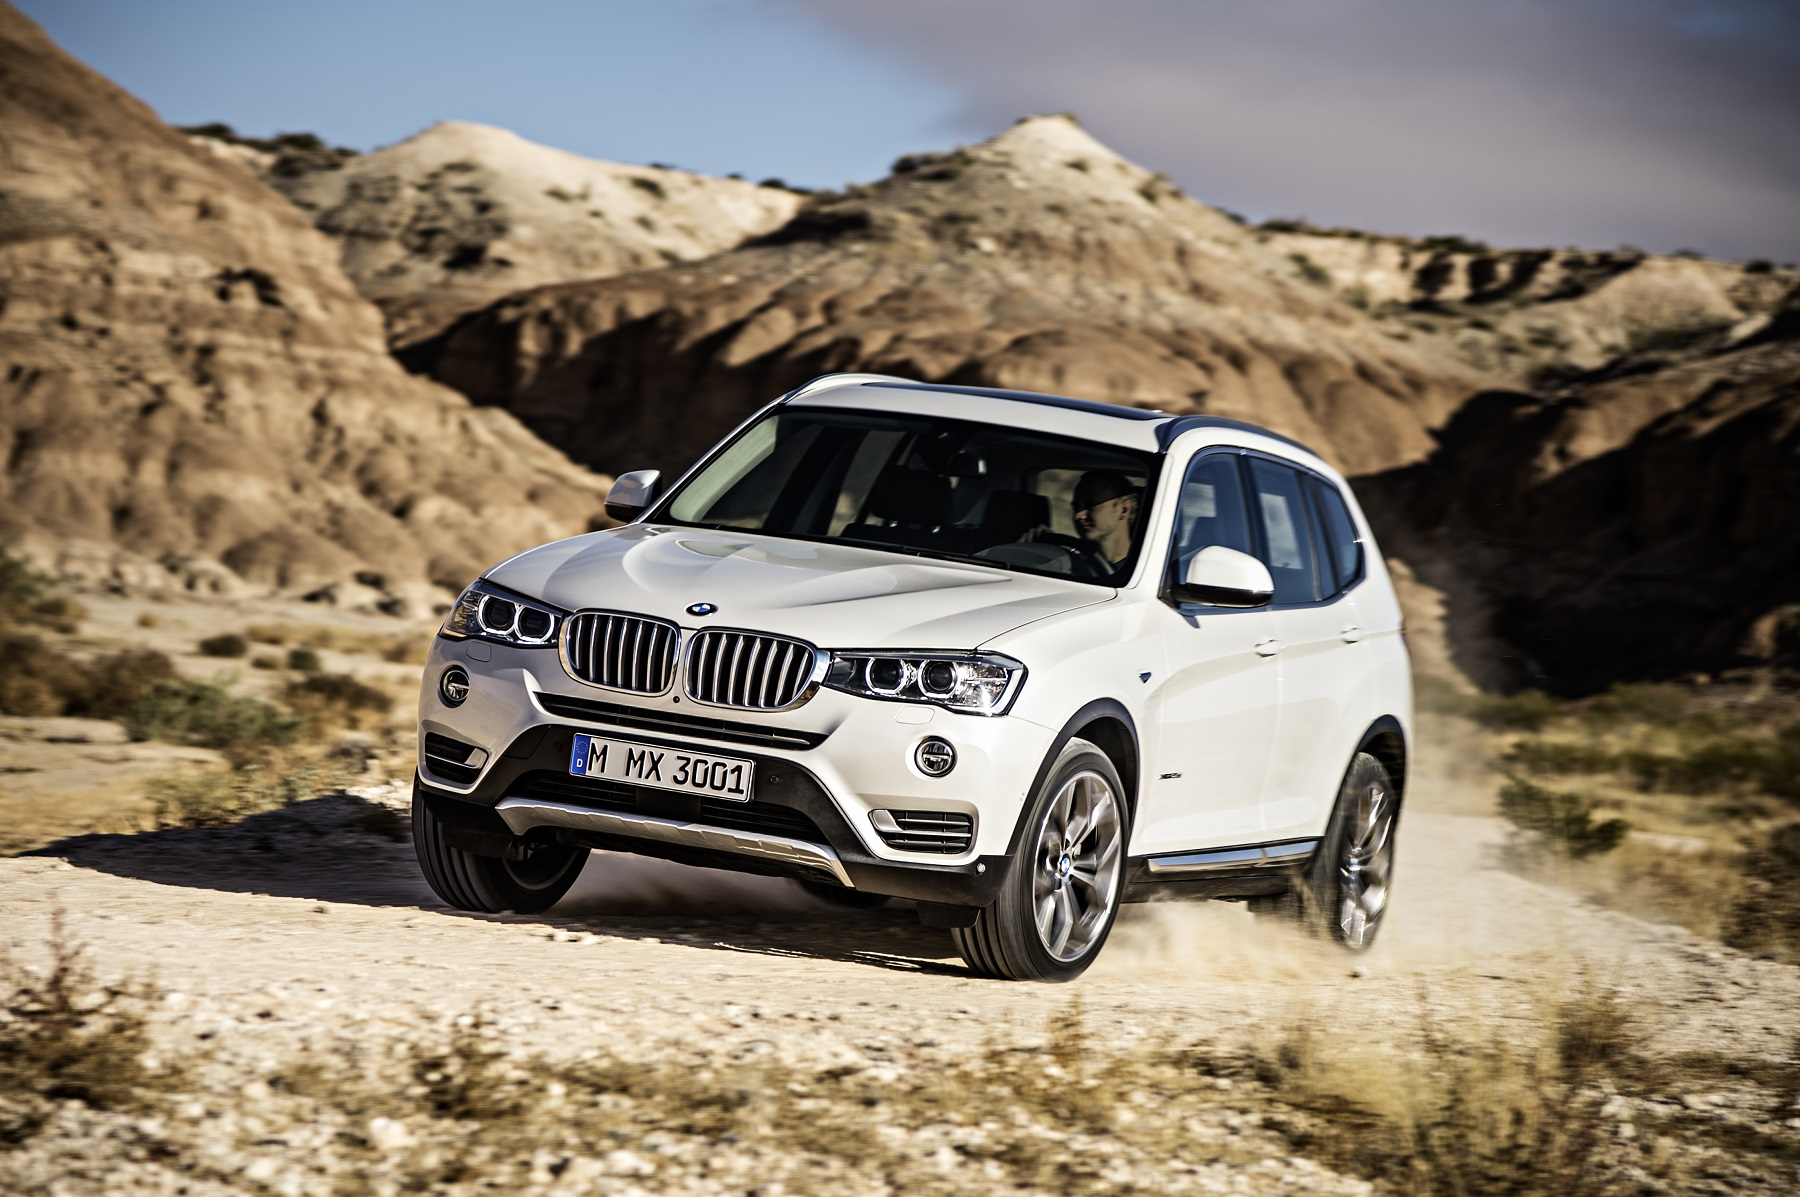 BMW X3 Easily Handles Light Trails Get f the Road GrooveCar